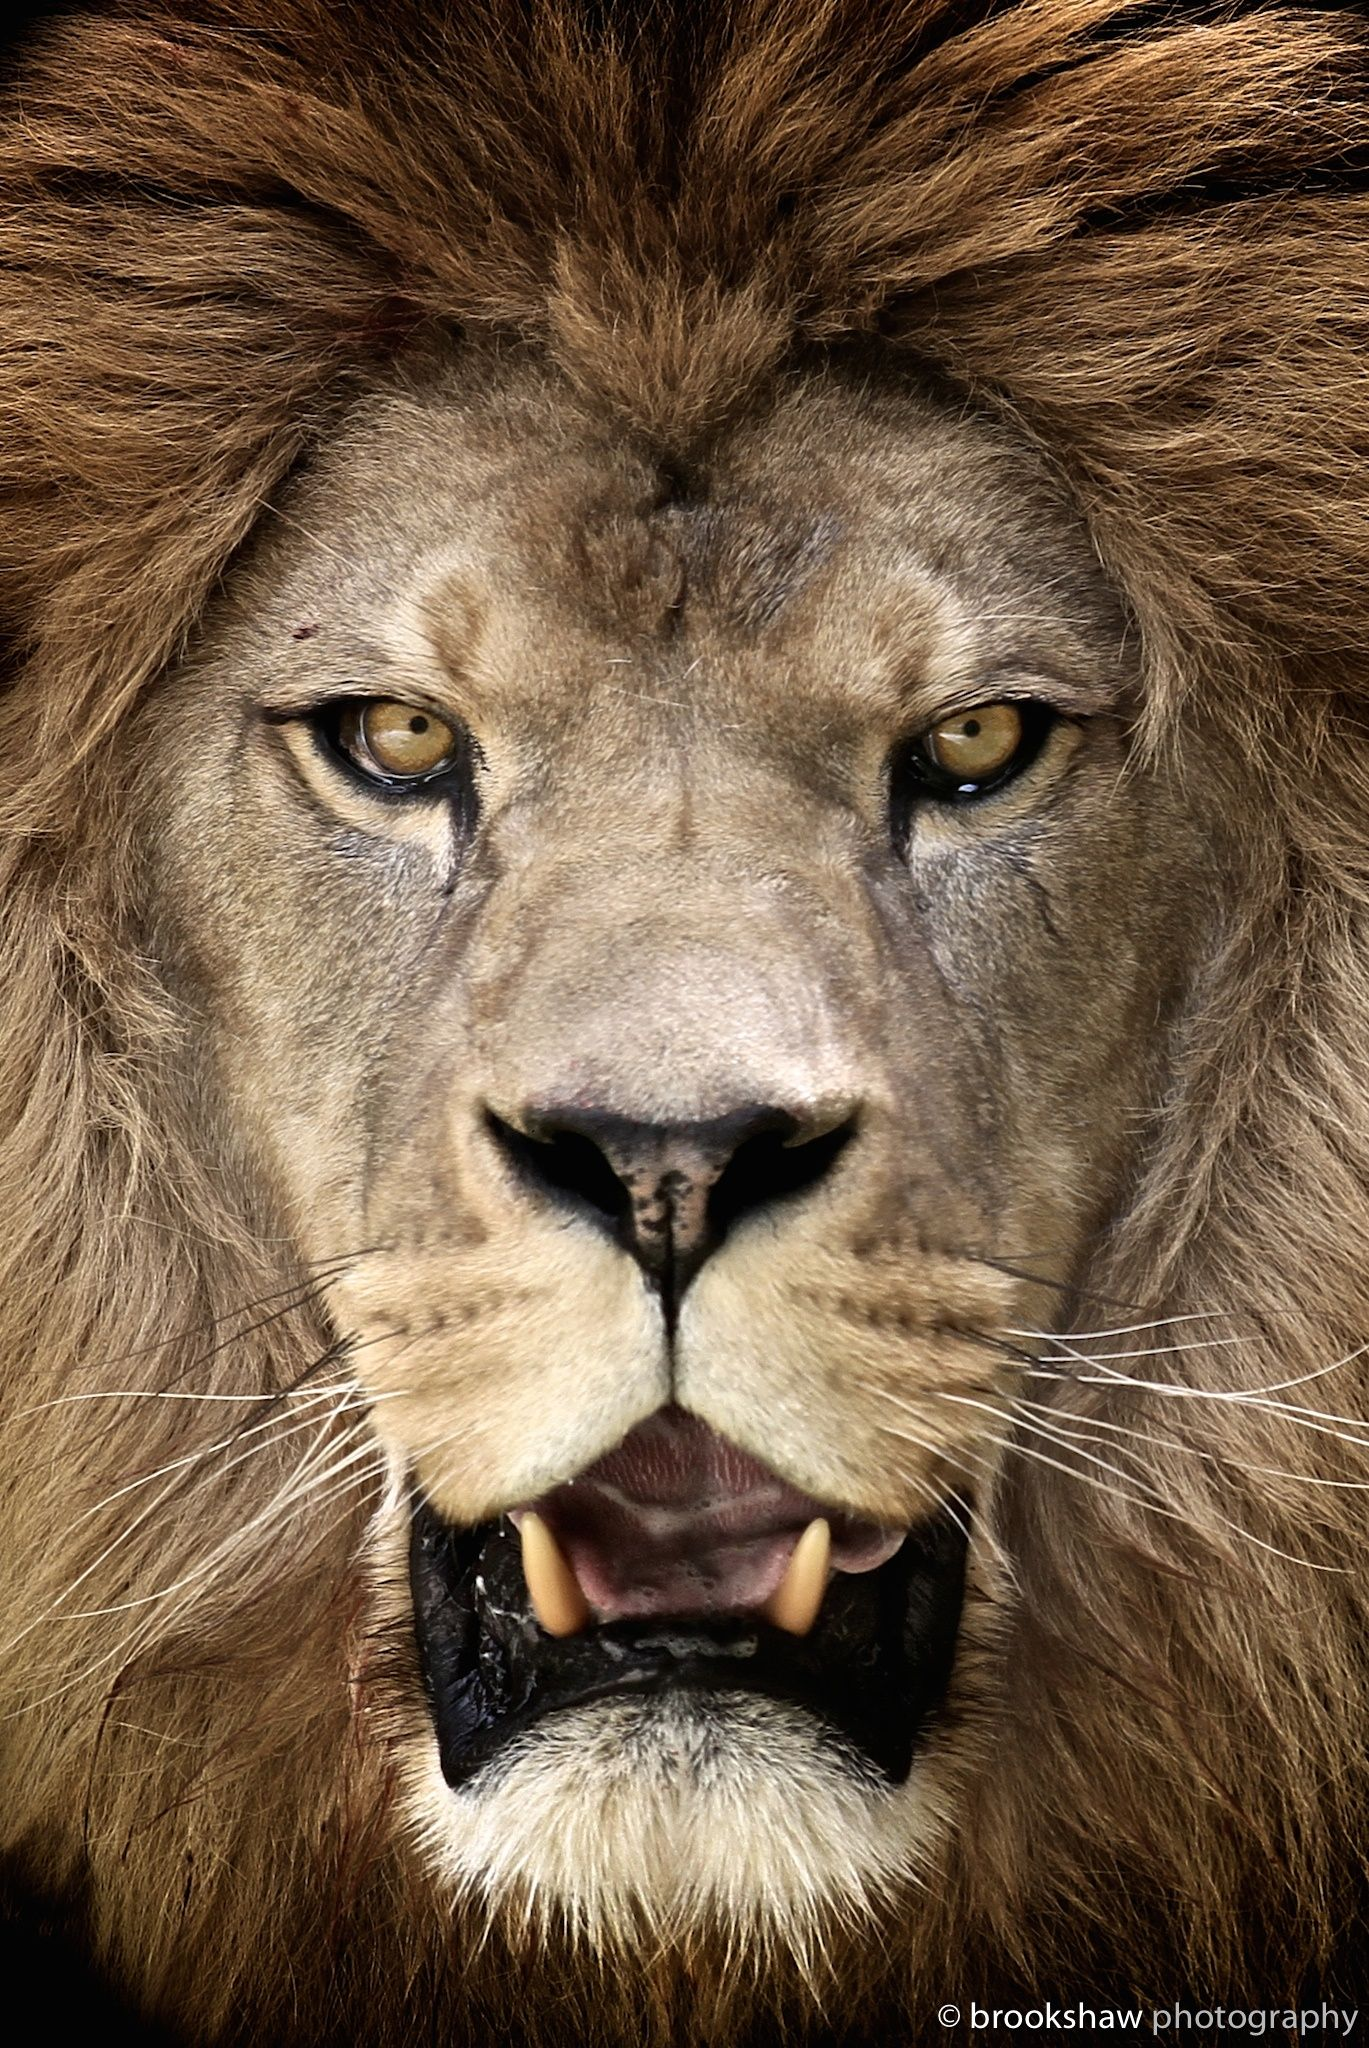 Milo • Barbary Lion, this subspecies of lion is extinct